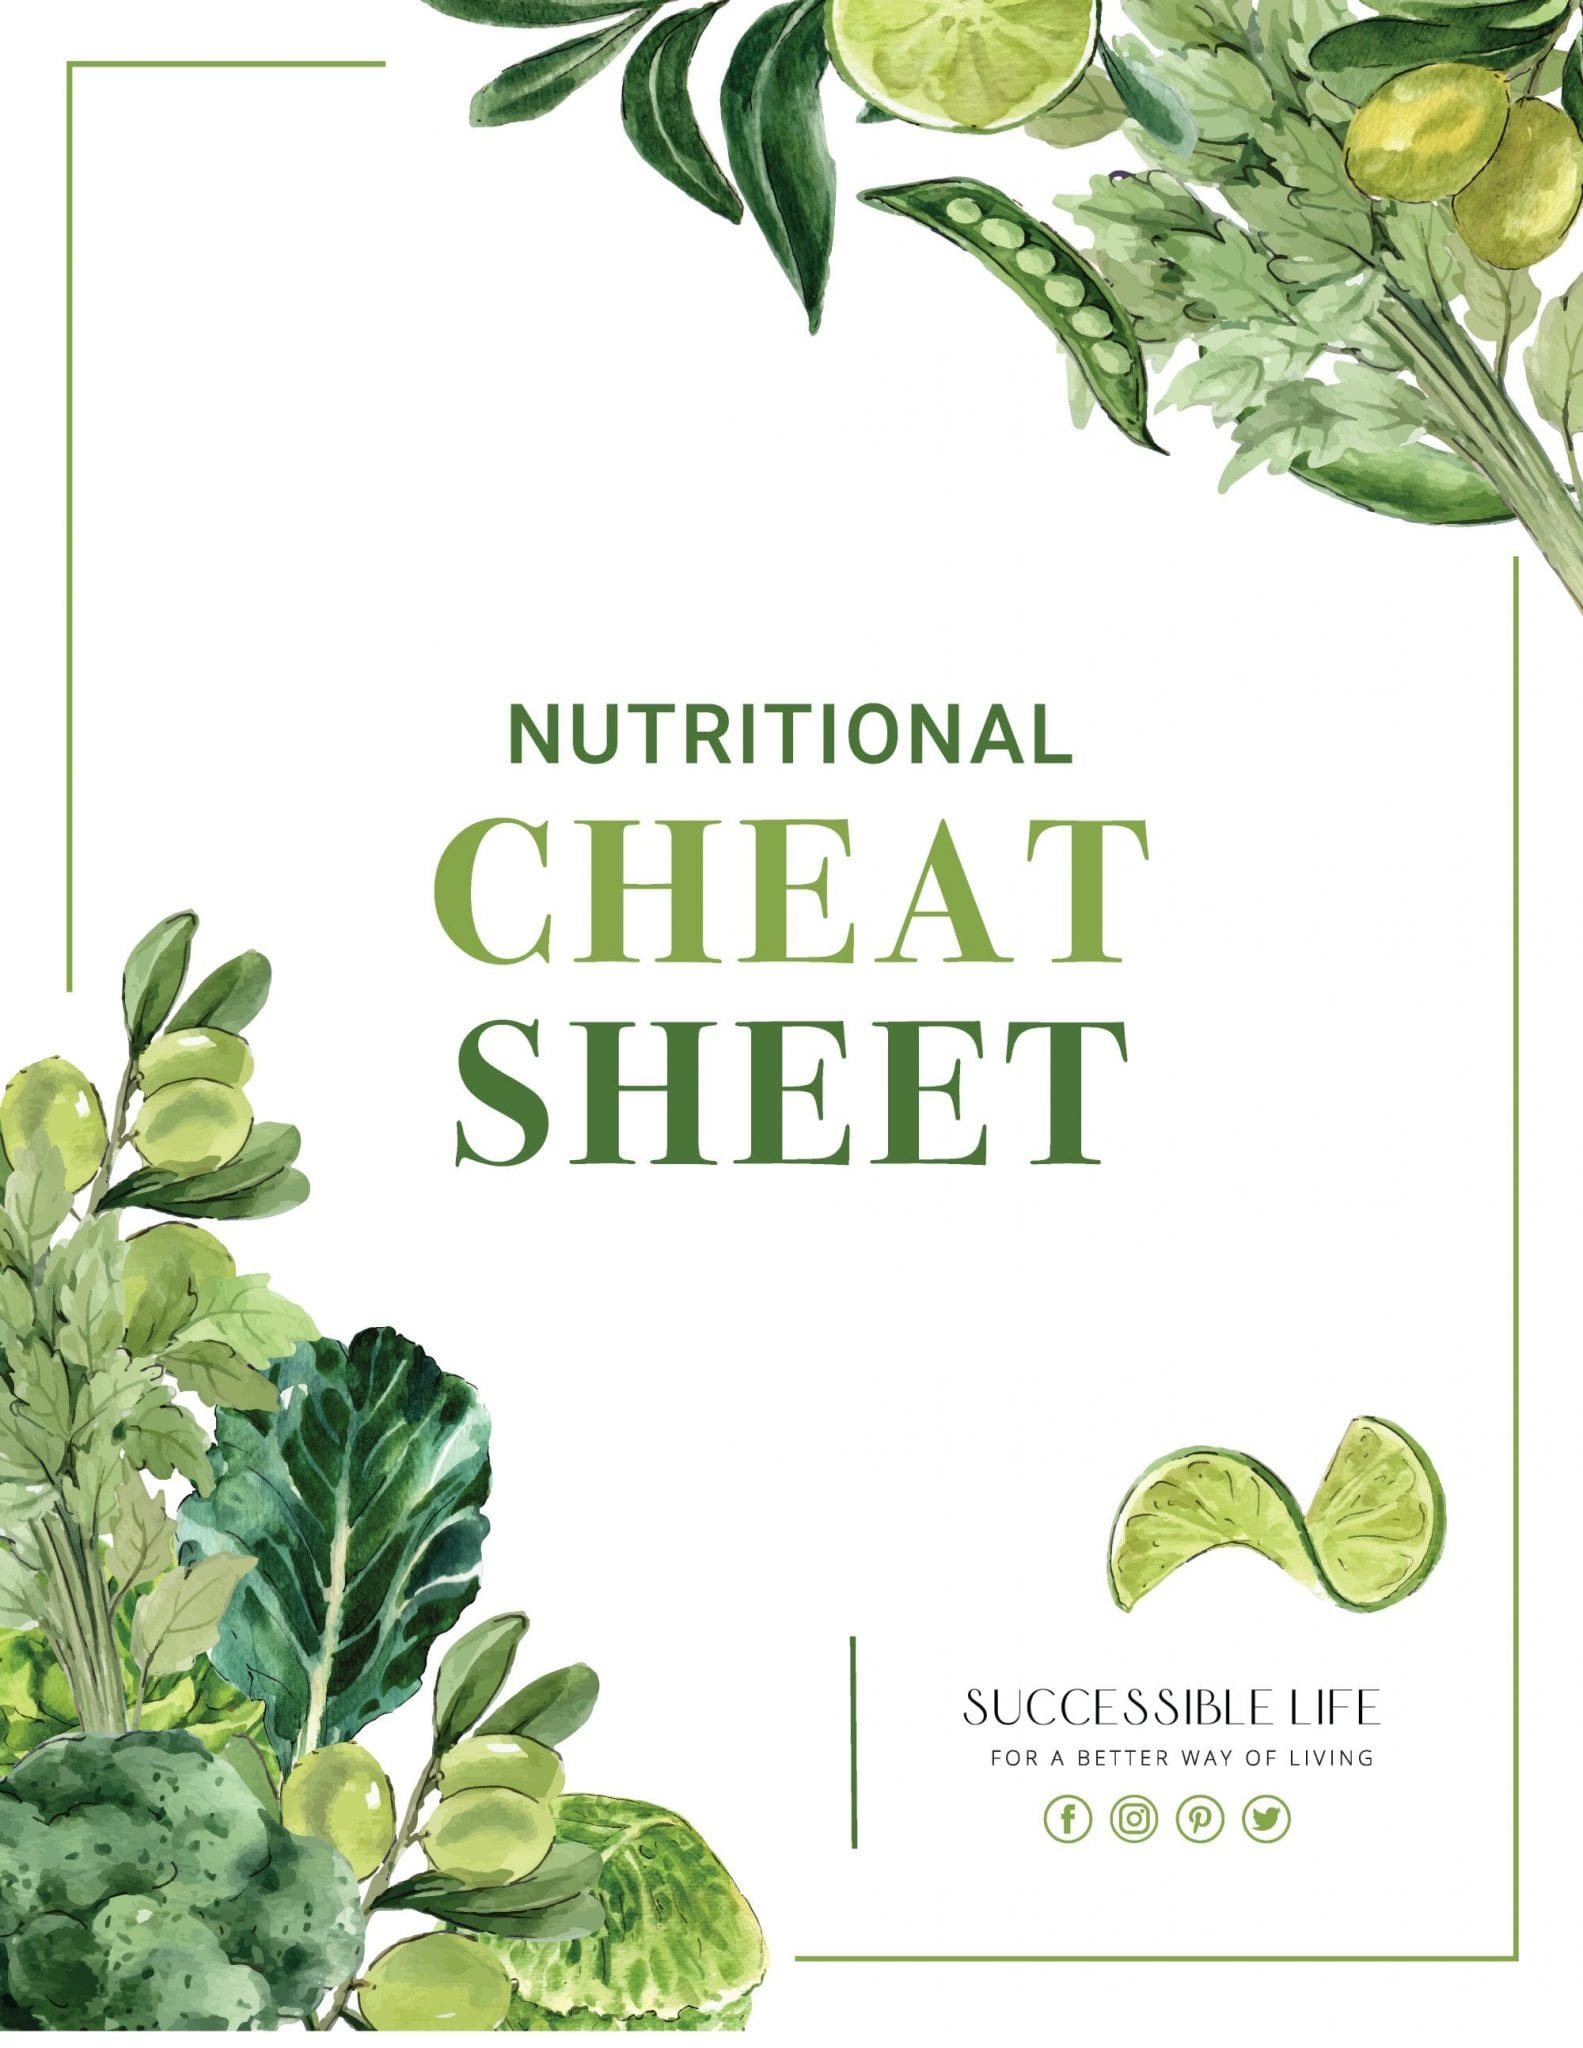 Nutritional Cheat Sheet Cover